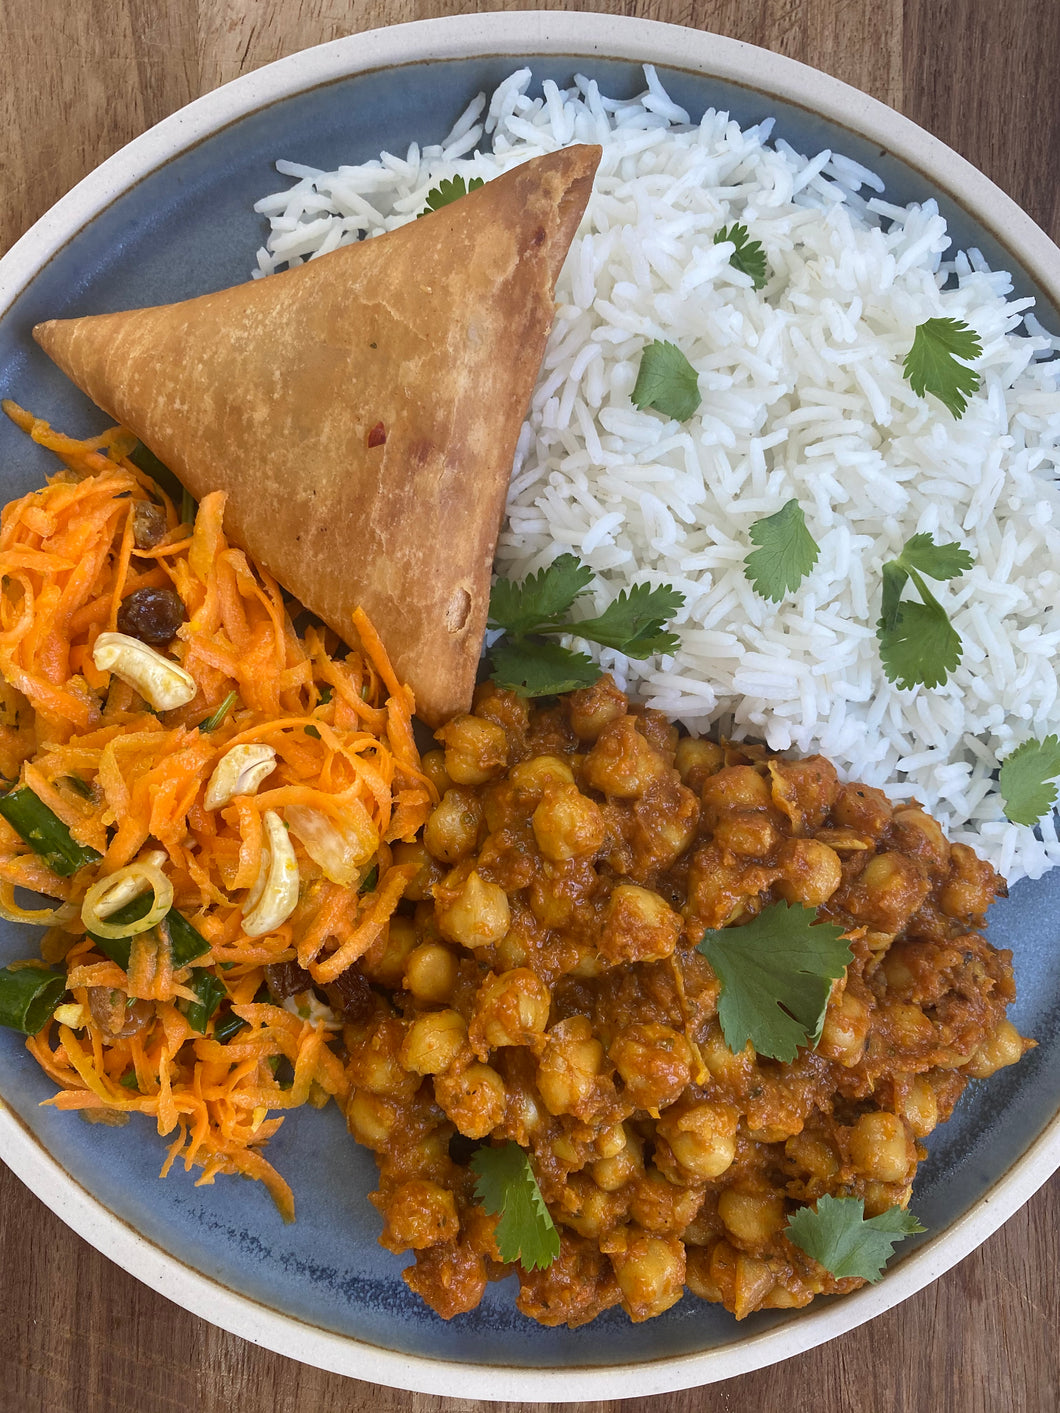 #6 Delivered cold - chana masala with basmati rice, vegetable samosa and Bombay carrot salad